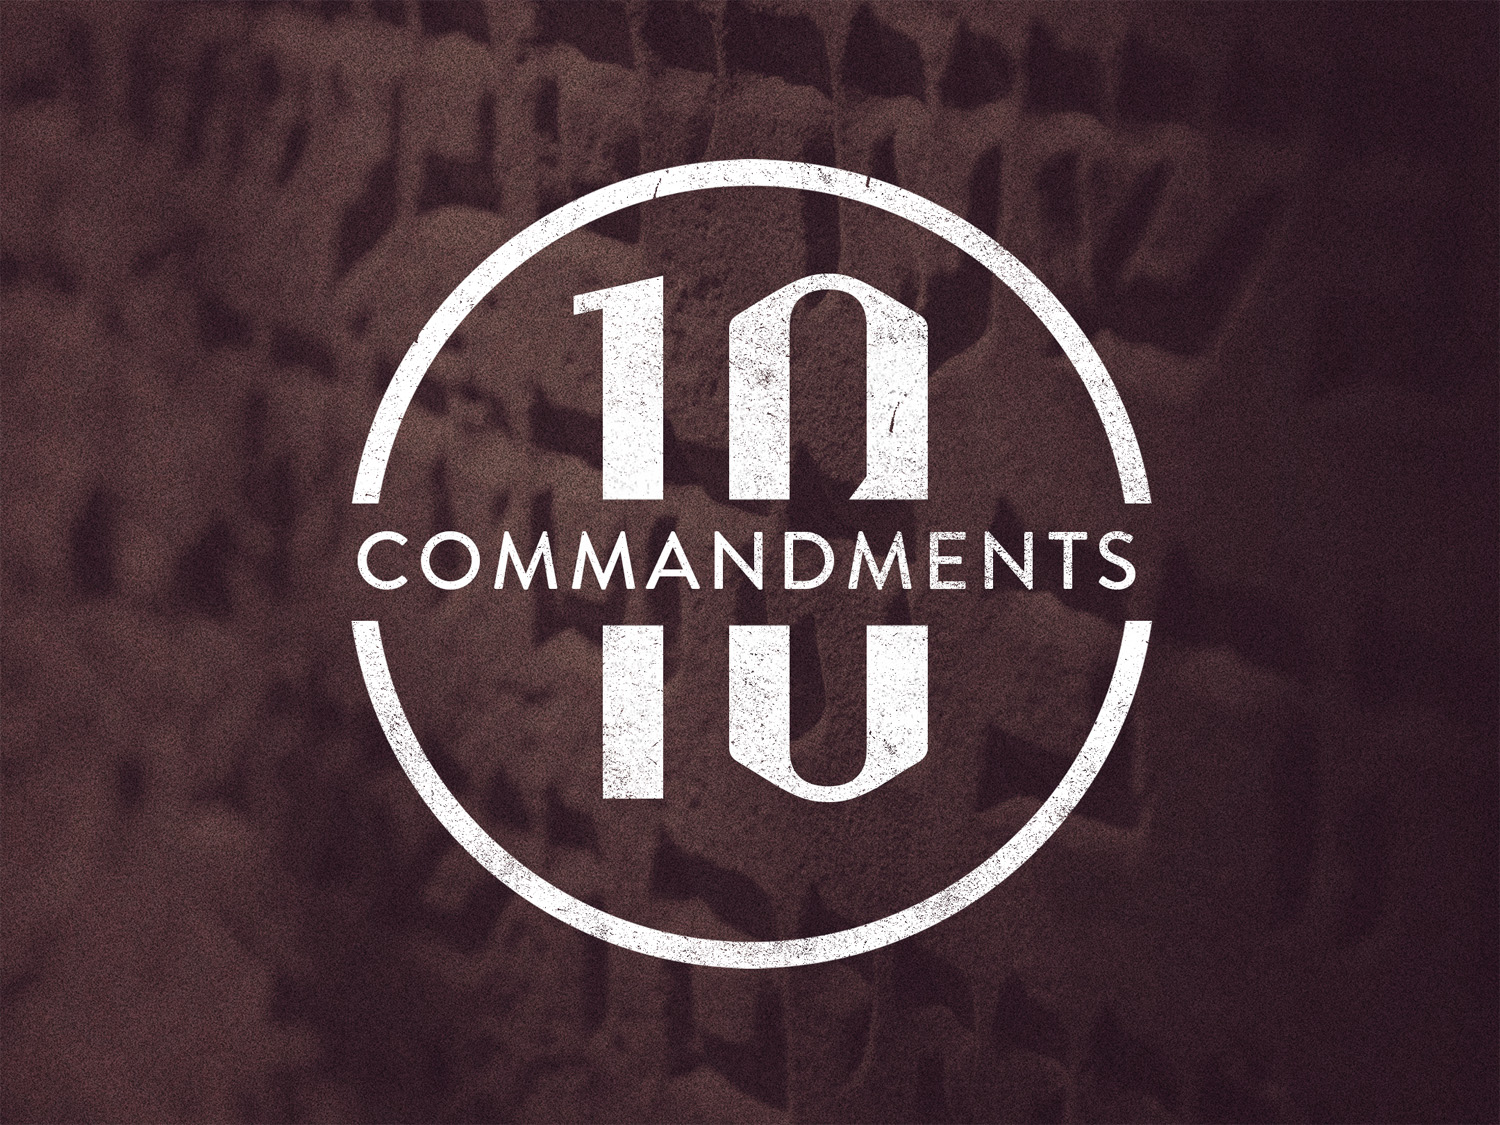 Exodus 20v20 Can Anyone Perfectly Keep The Commandments?